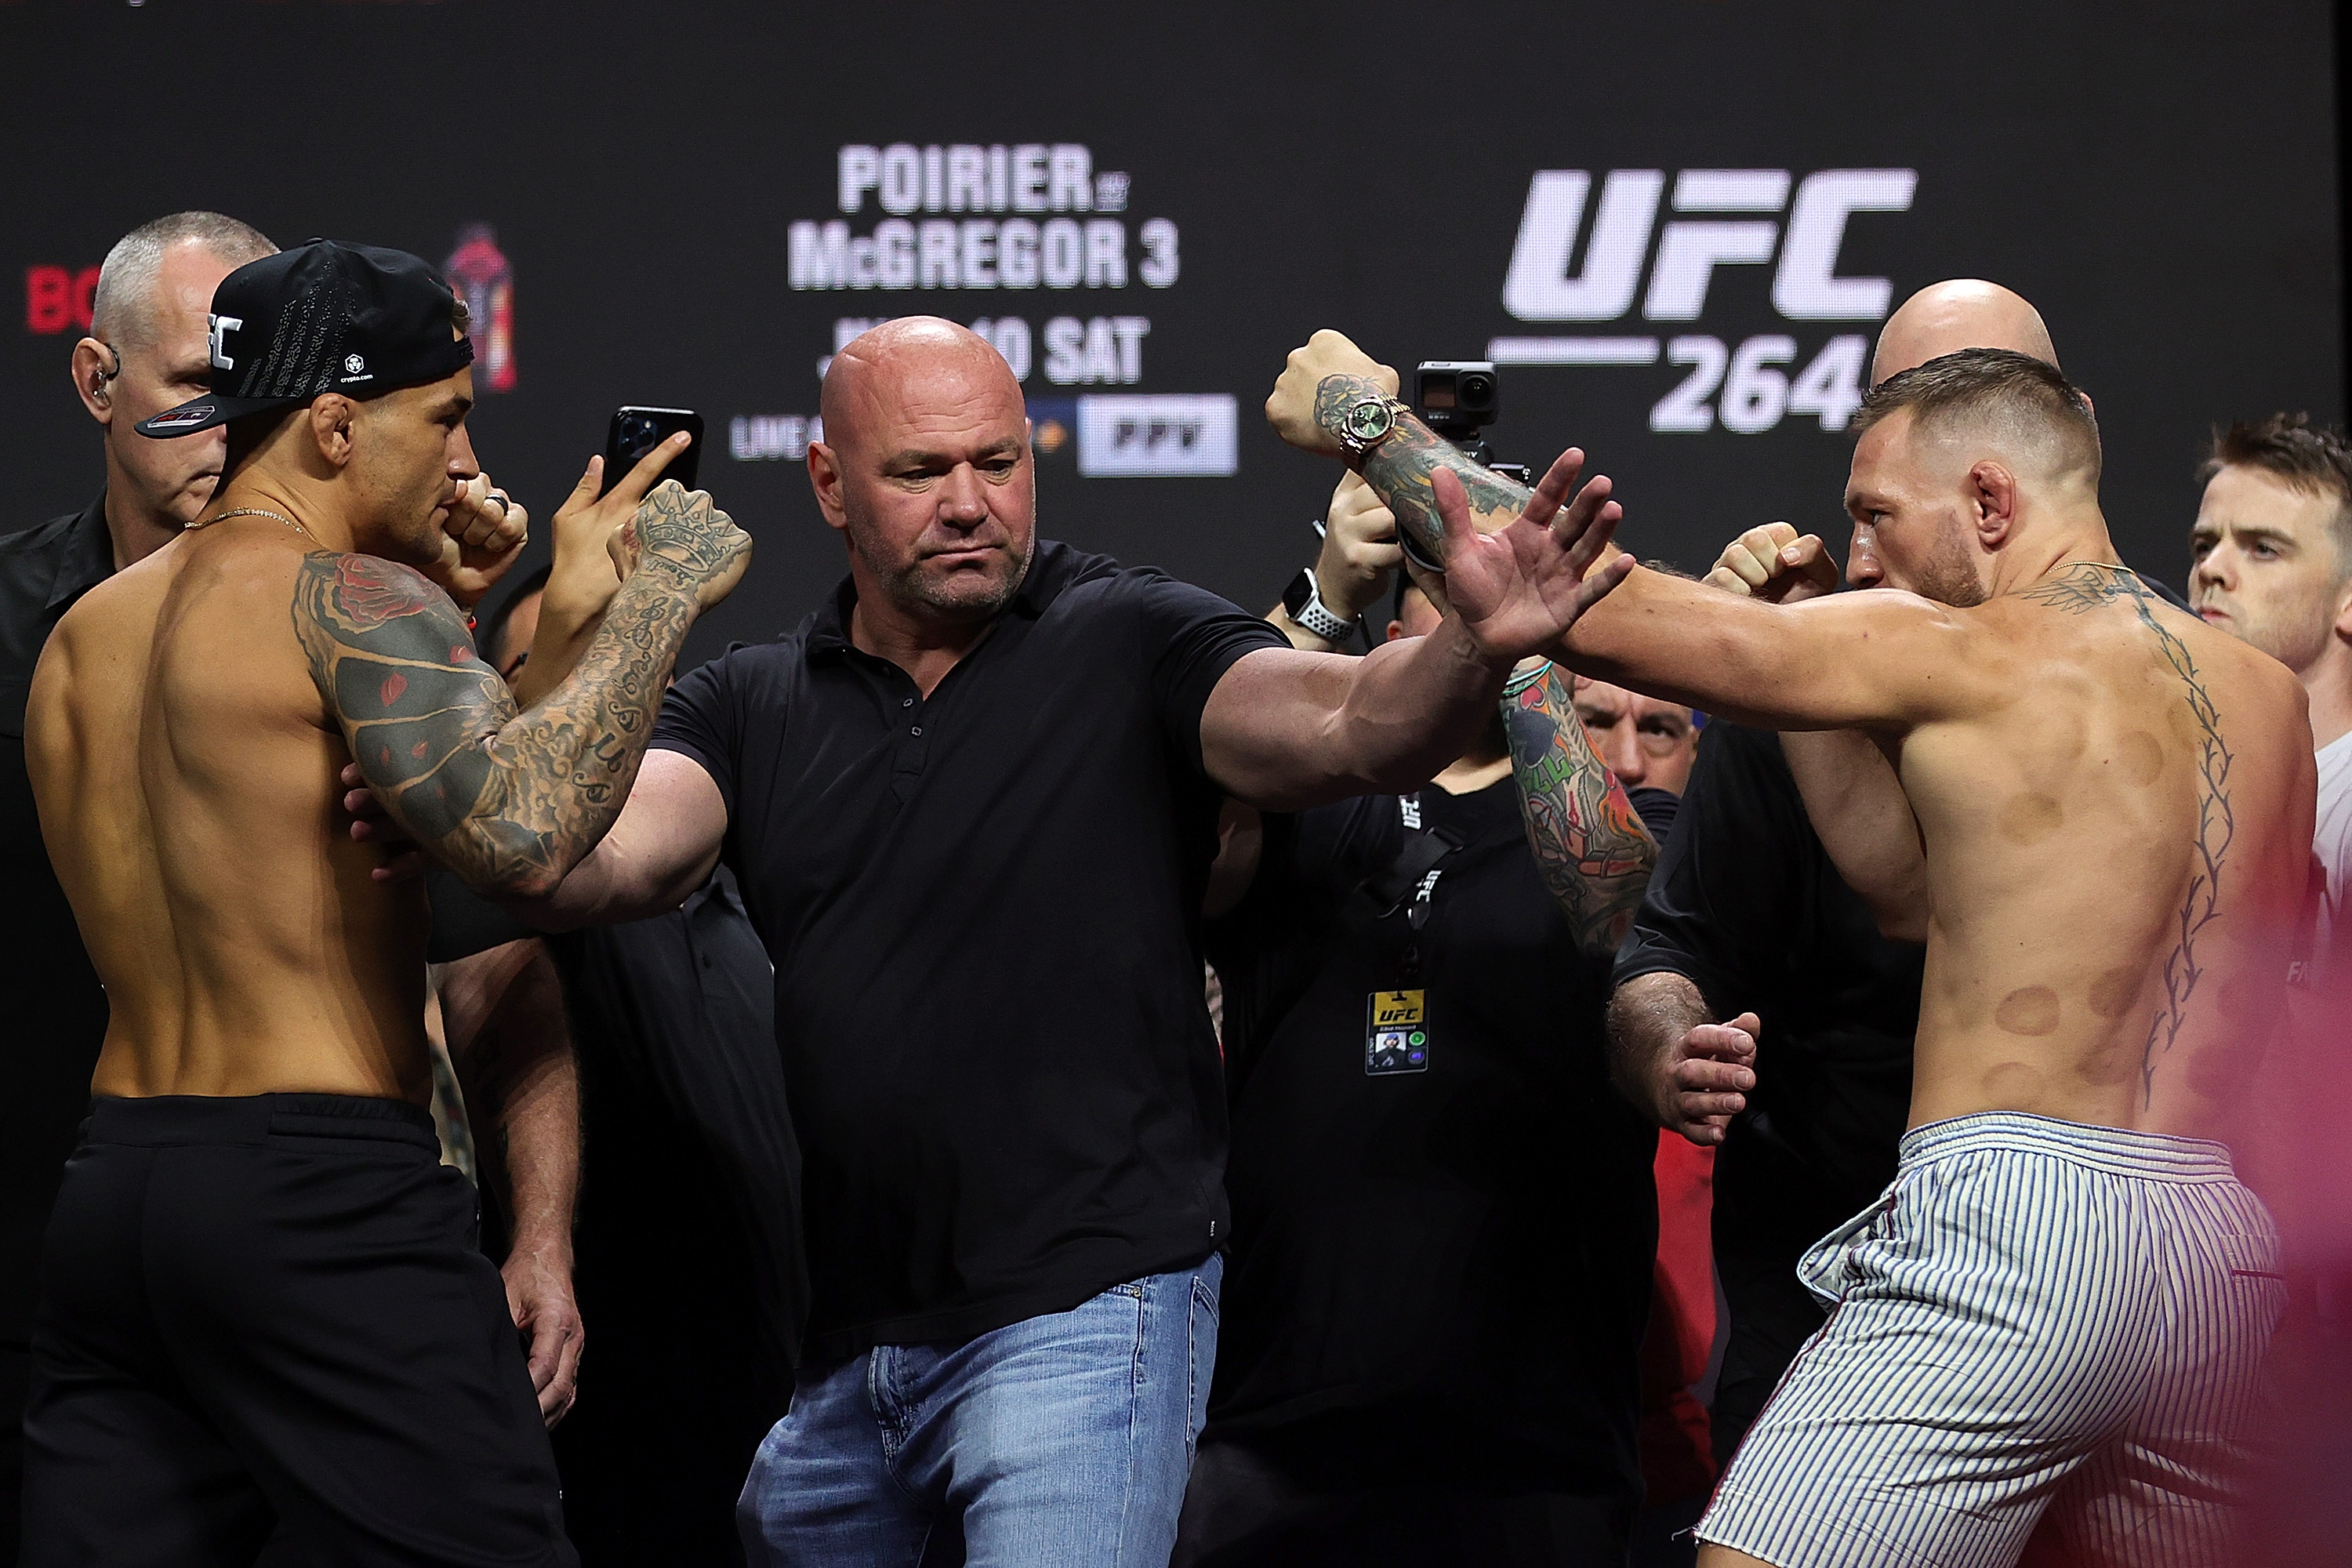 Dustin Poirier and Conor McGregor pose during a ceremonial weigh in for UFC 264 at T-Mobile Arena on July 09, 2021 in Las Vegas, Nevada.